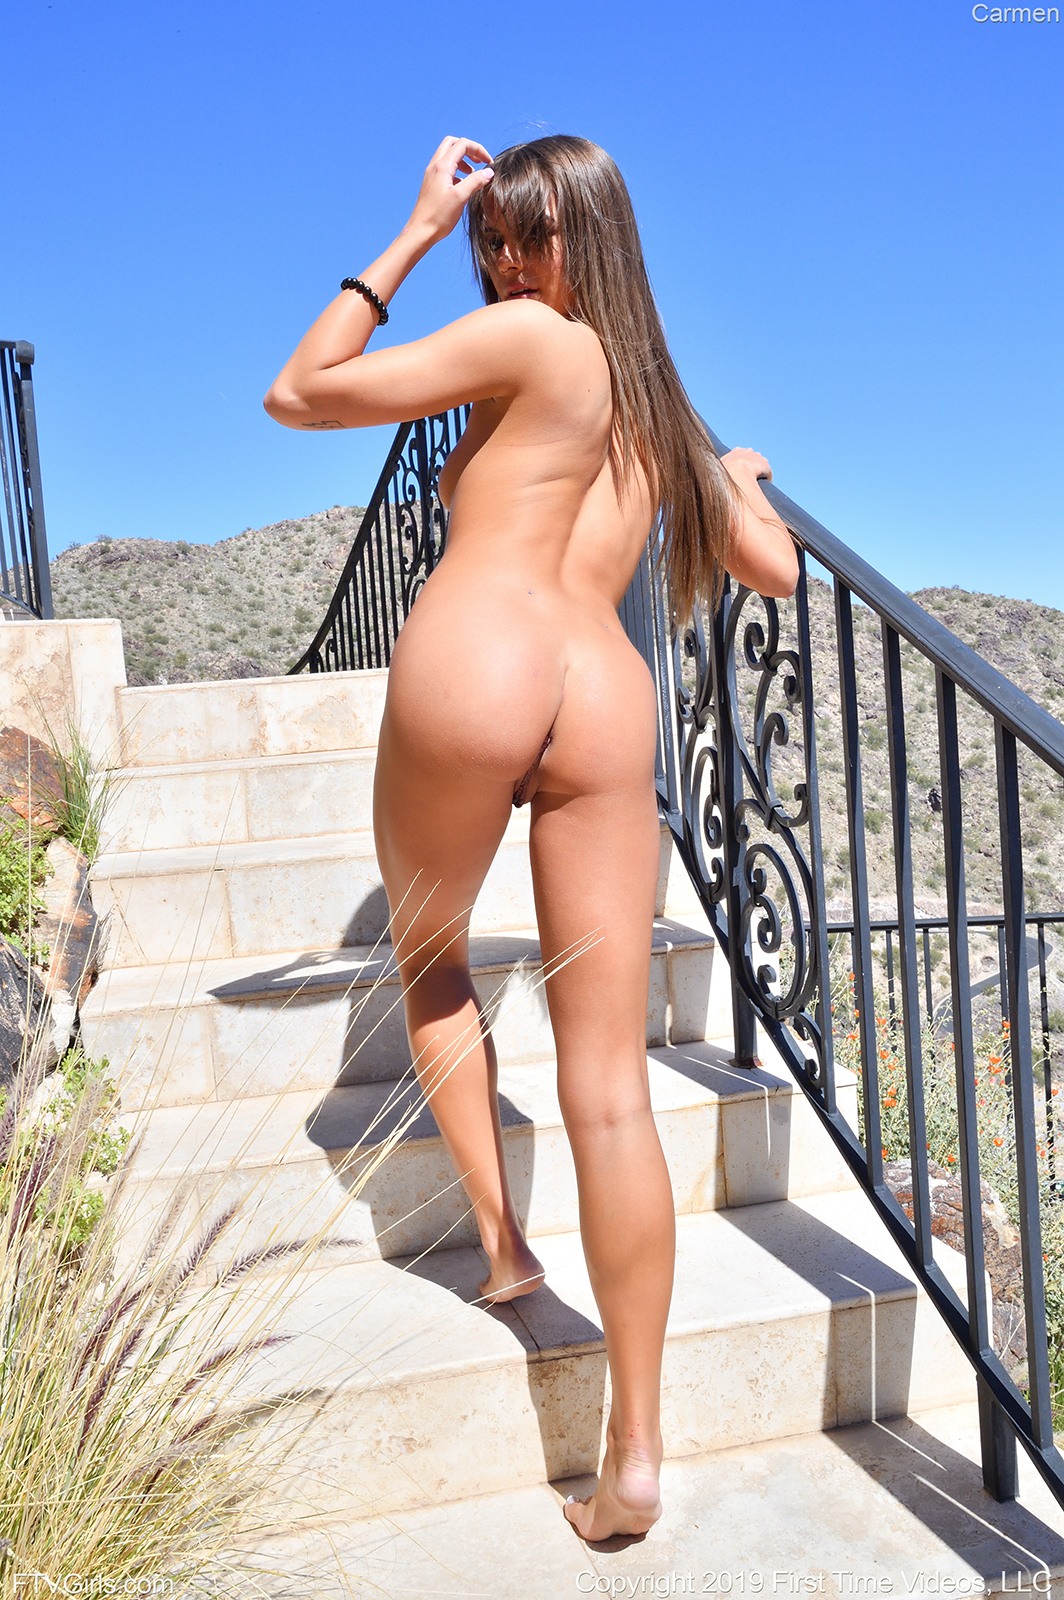 wpid-super-sexual-coed-carmen-totally-naked-out-in-the-sun-prolapsing-her-anus4.jpg